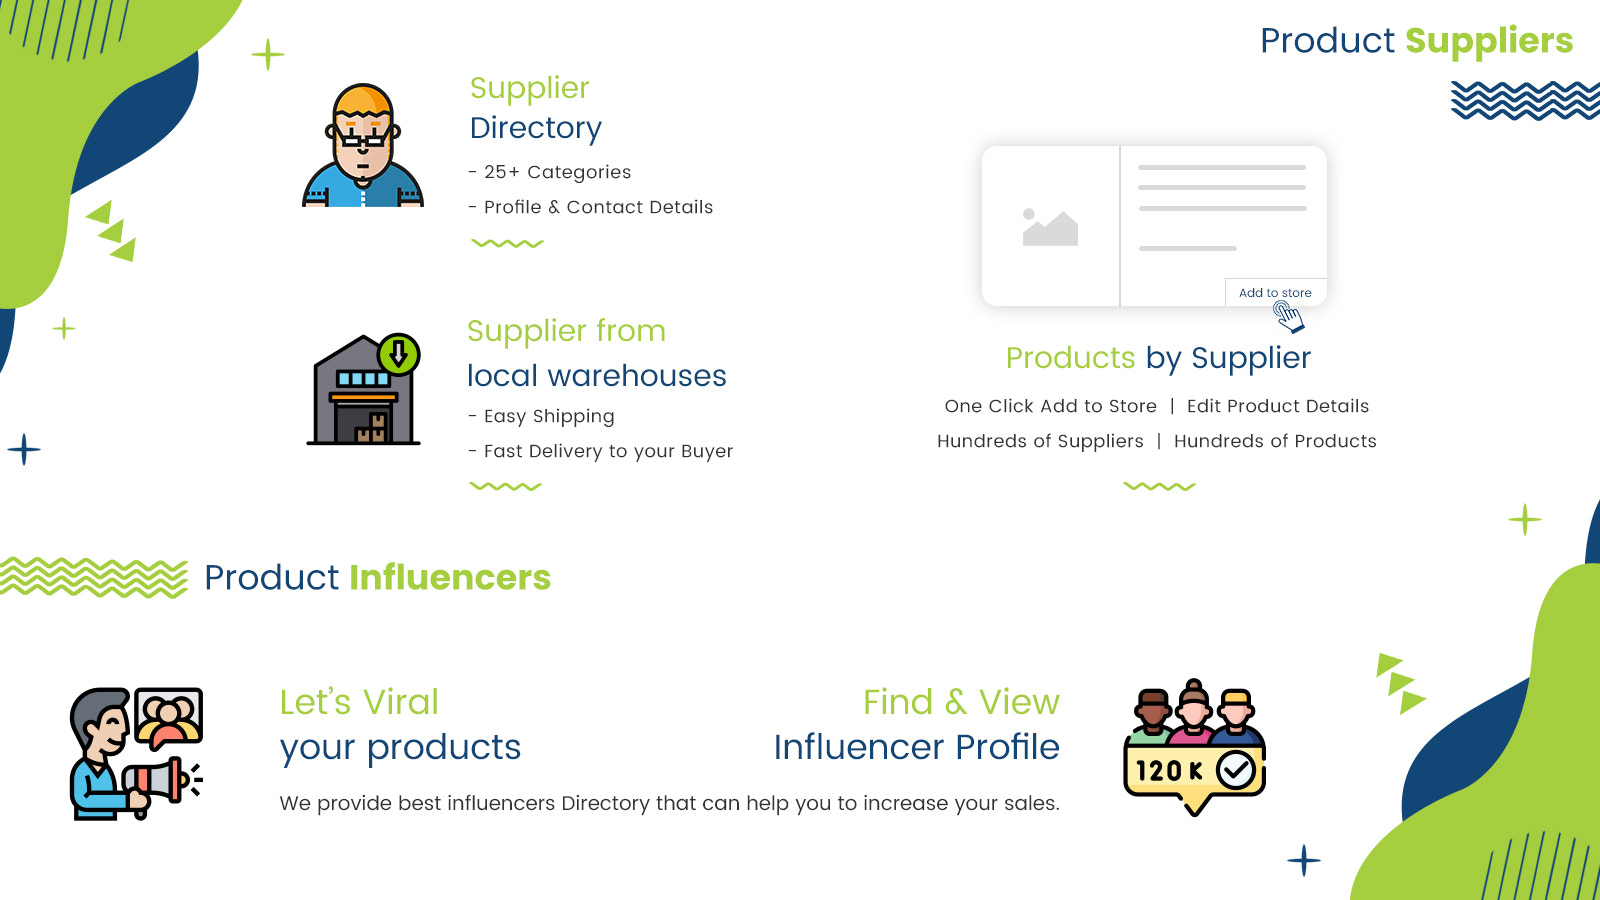 Supplier and Influencers